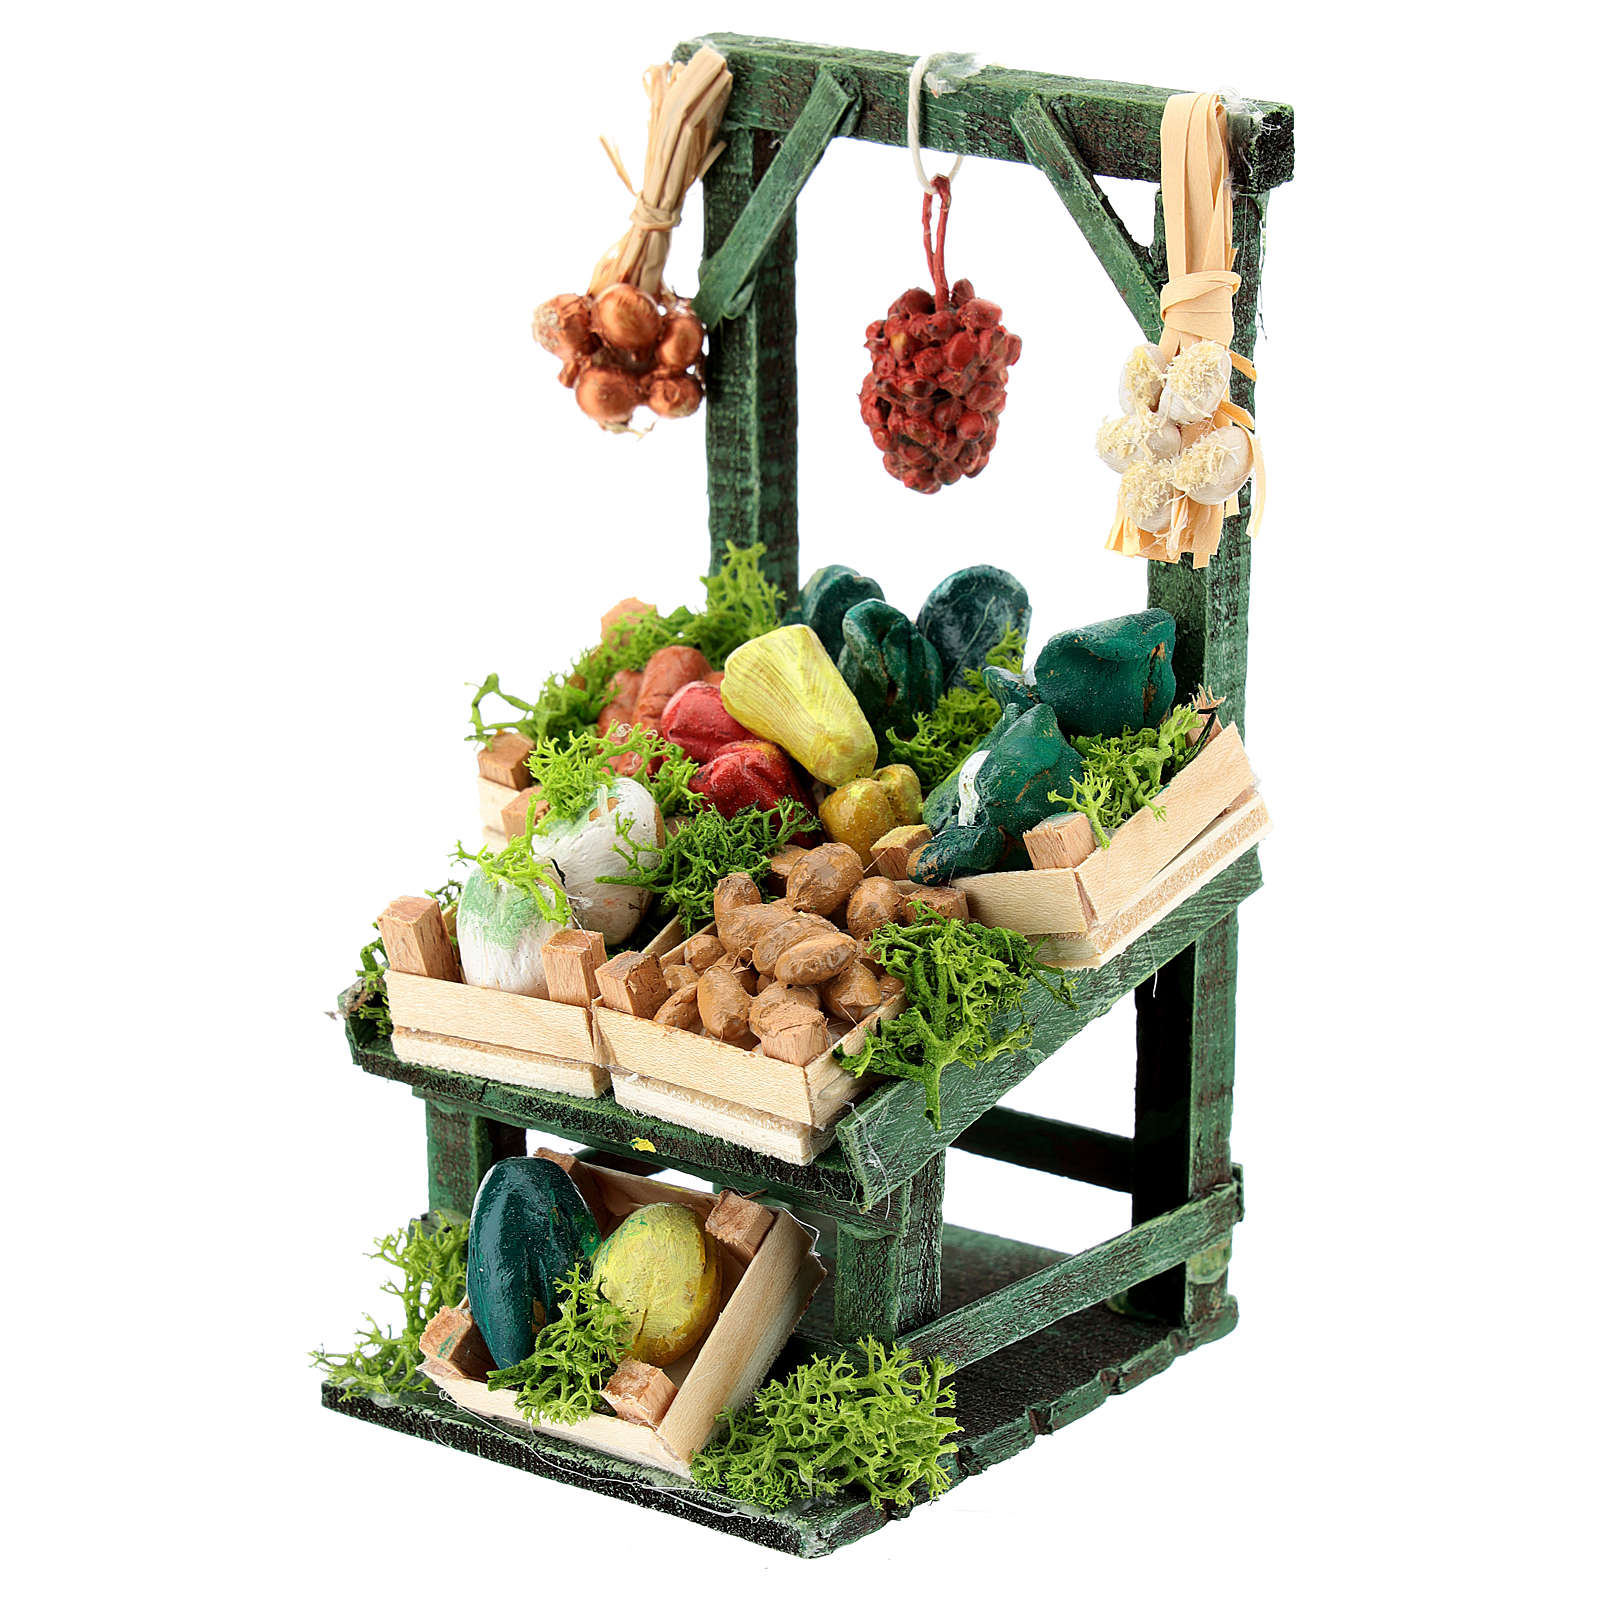 Titled vegetable stand with boxes for Neapolitan Nativity Scene of 6-8 cm 4